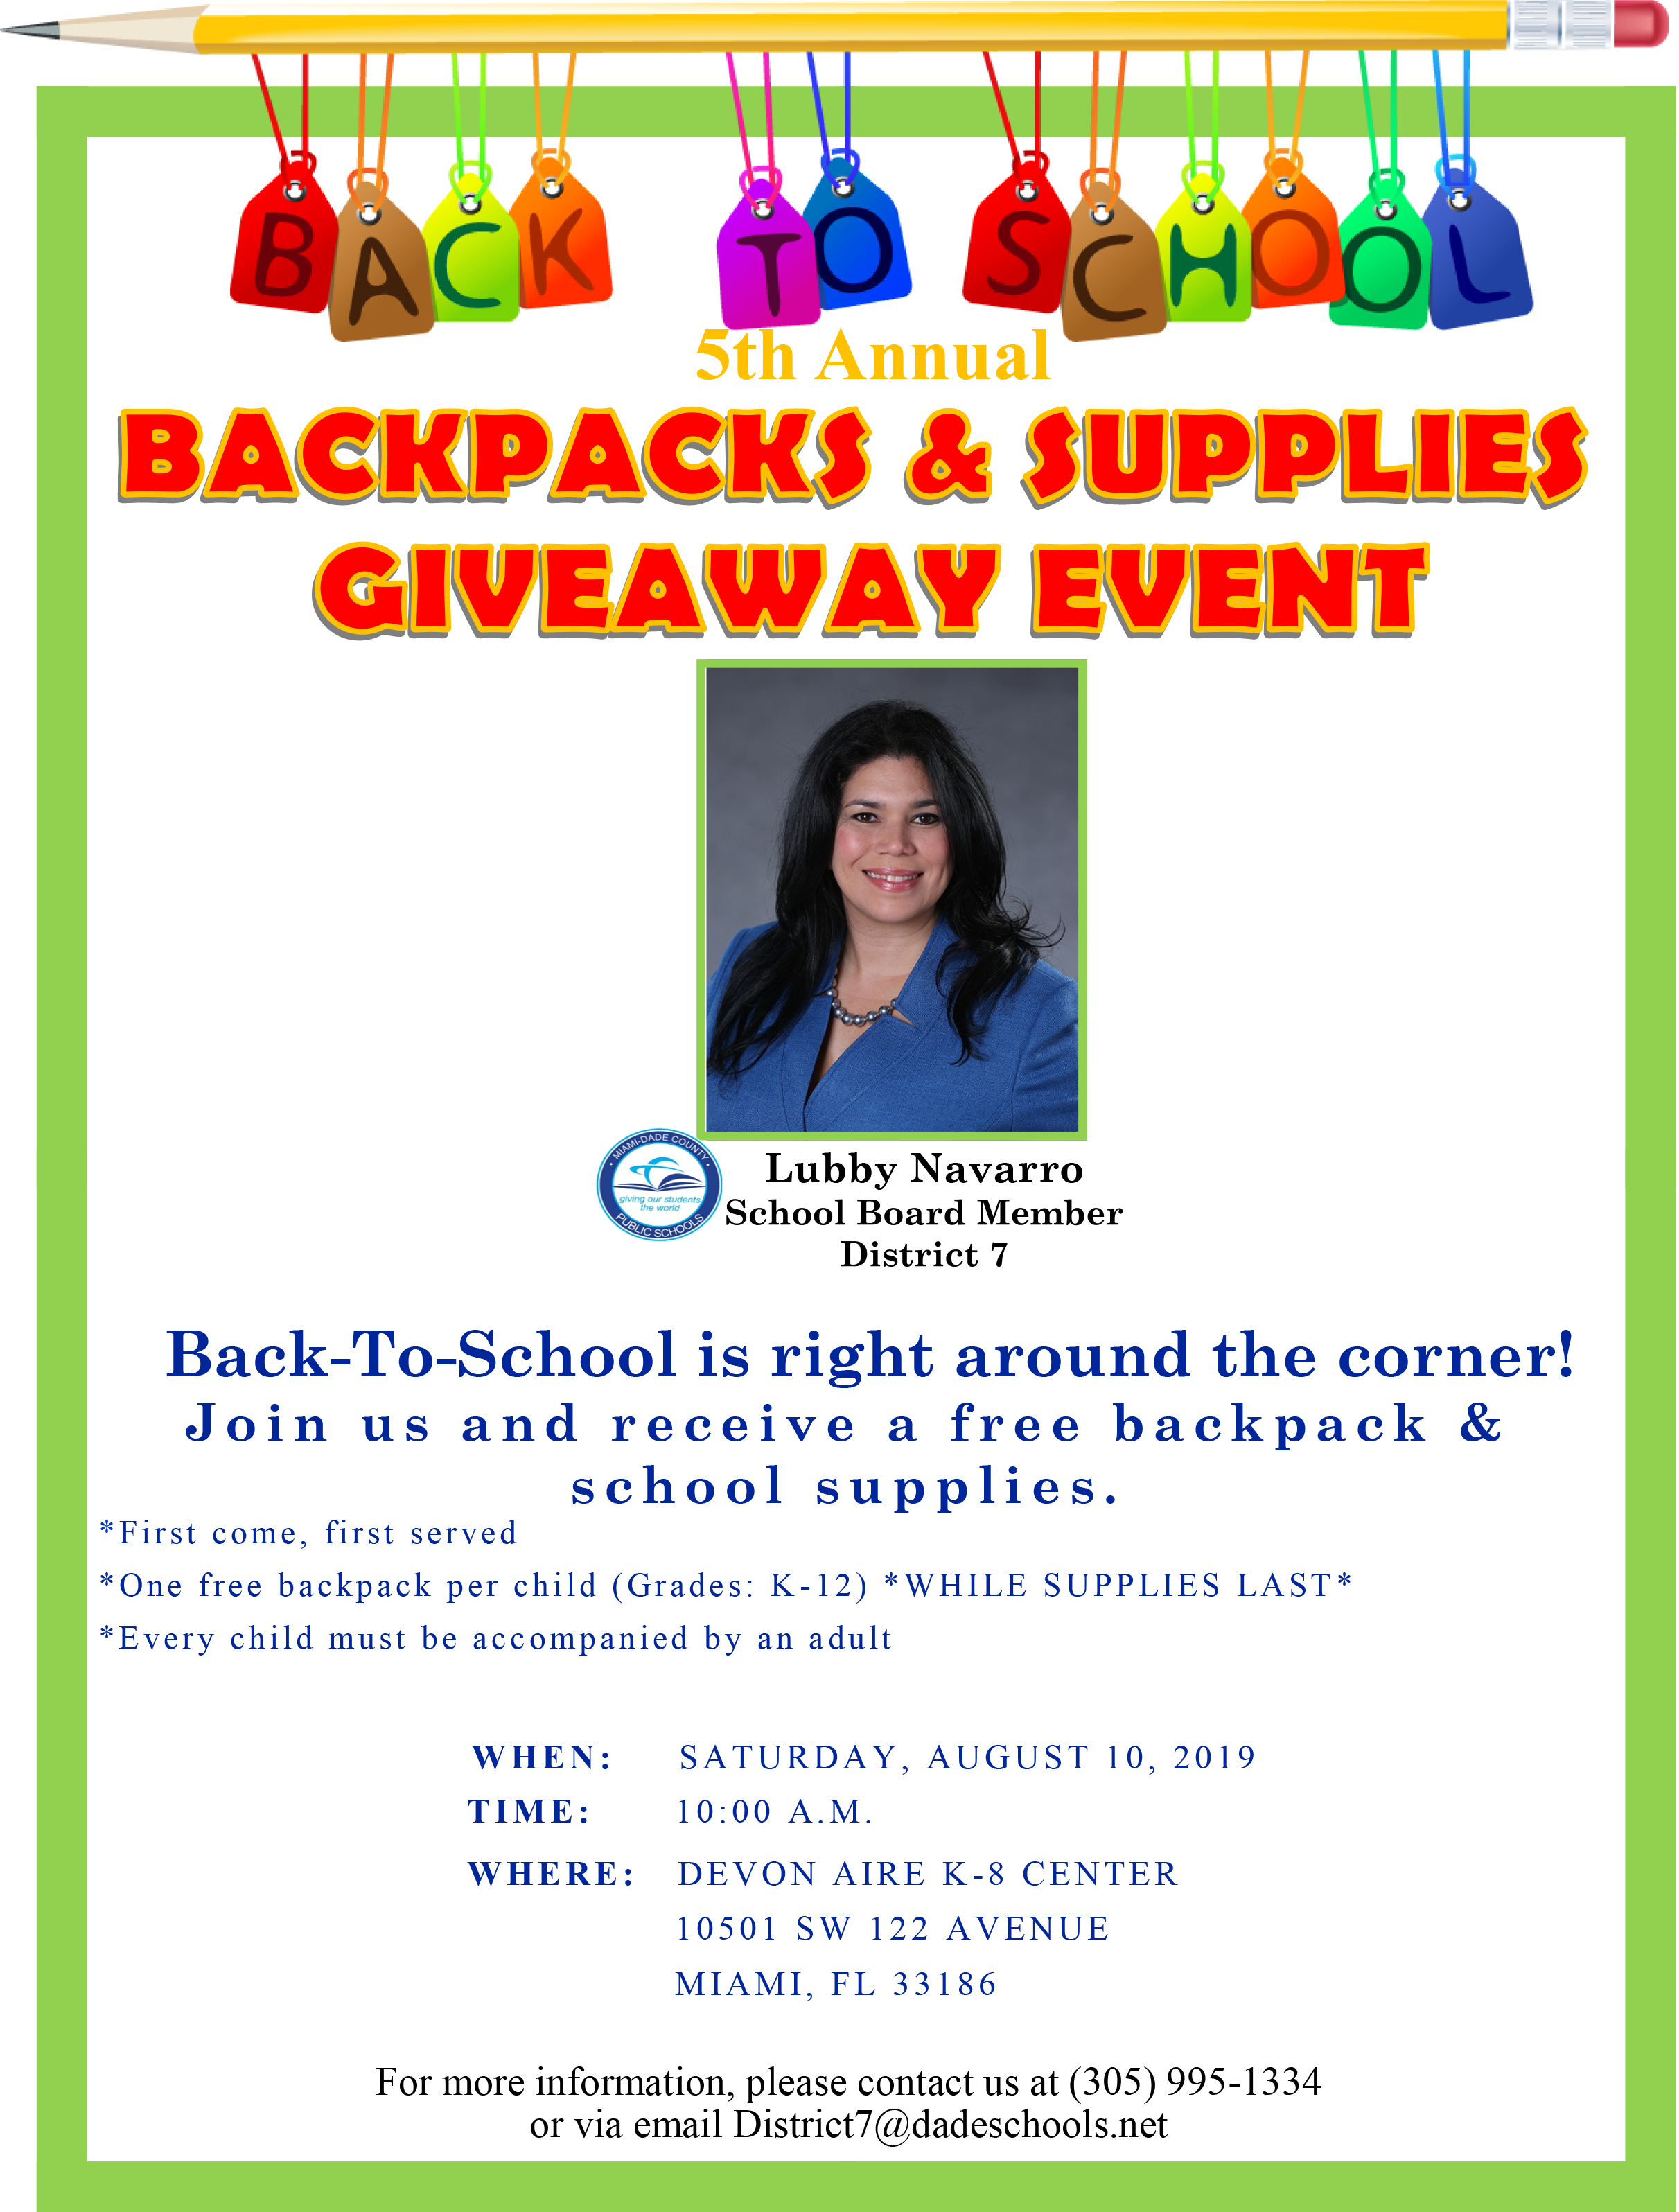 5th Annual Backpack & Supplies Giveway @ DEVON AIRE K-8 CENTER   Miami   Florida   United States